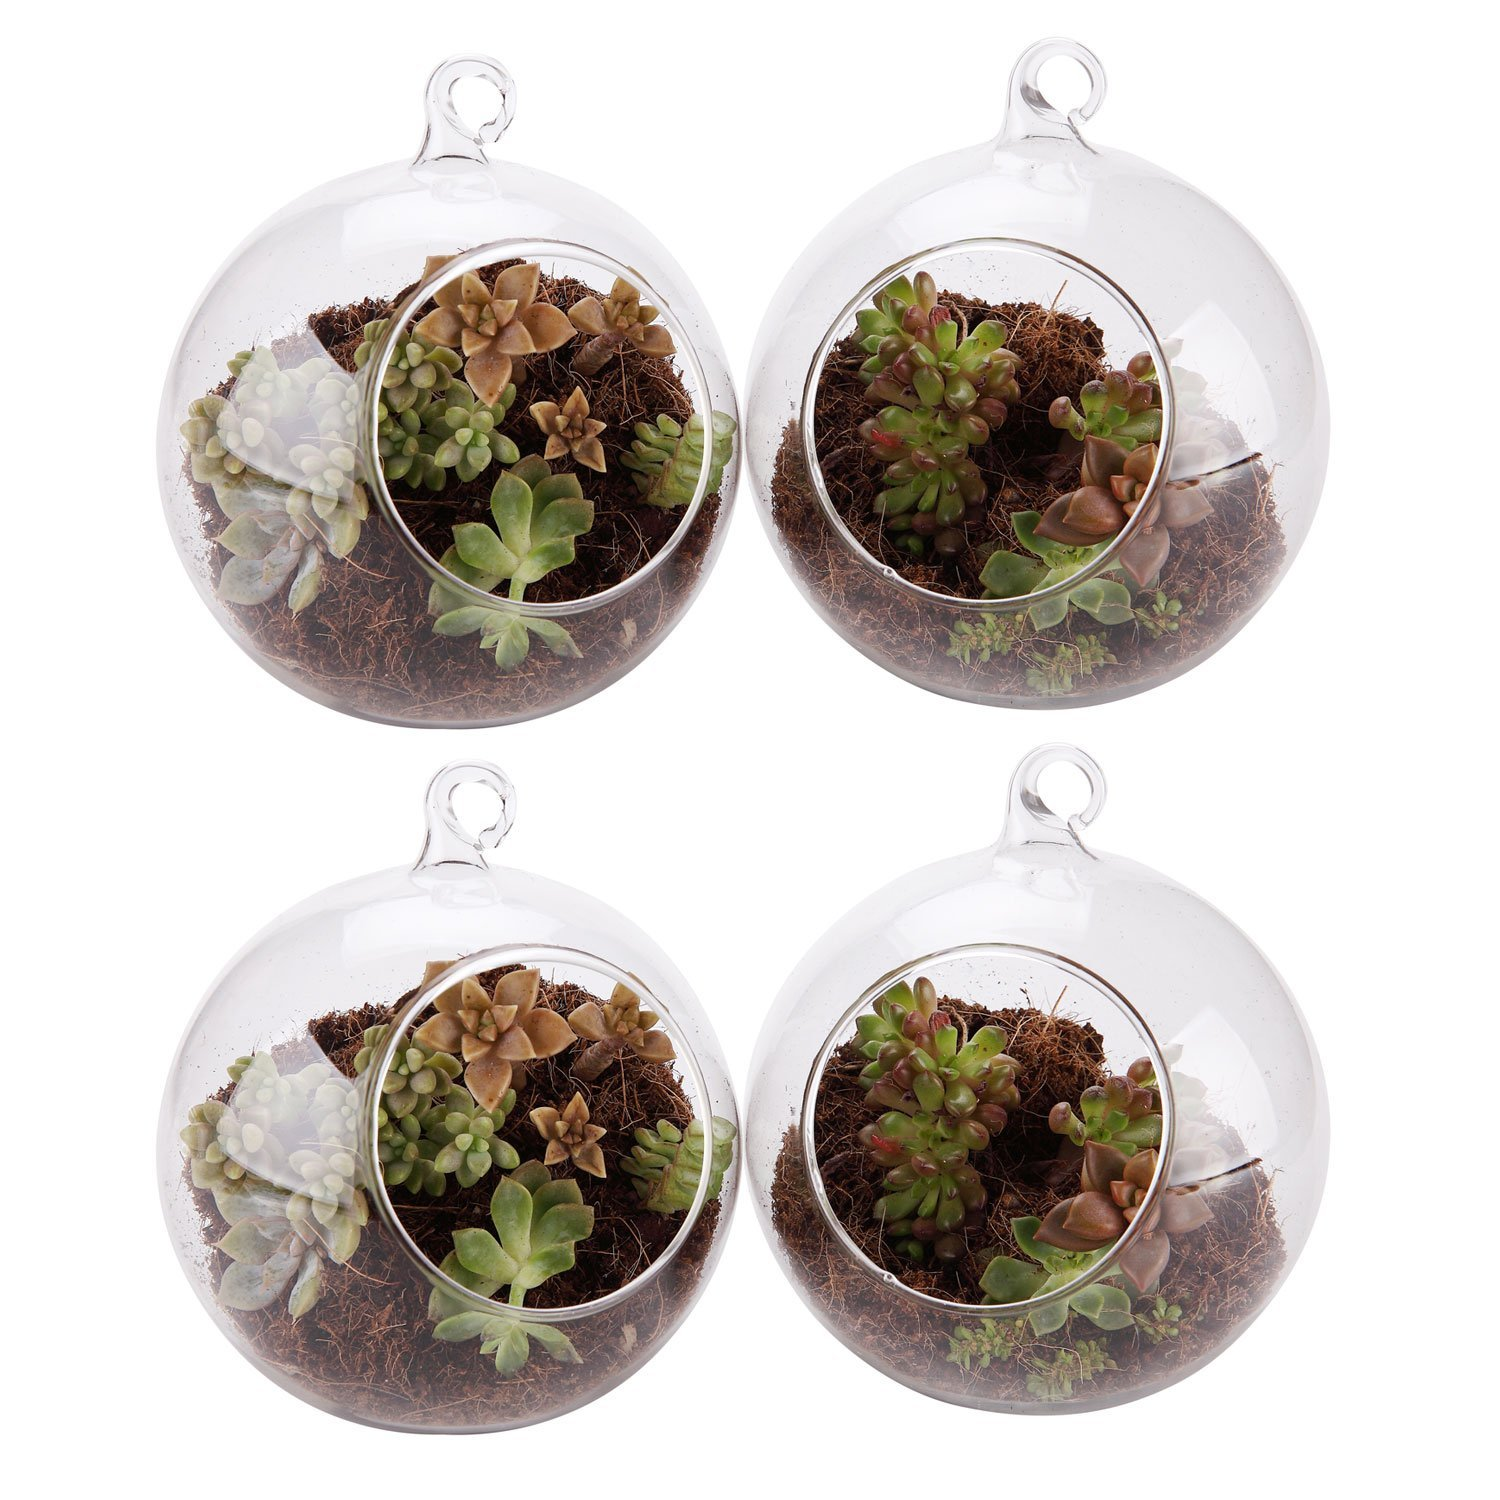 T4U 5.25'' Glass Hanging Plant Terrariums Tealight Holder - Pack of 4, Globe Air Plant Pot Container Planter for Succulent Cactus Fern, Candle Holder for Party Wedding Decor Birthday Christmas Gift